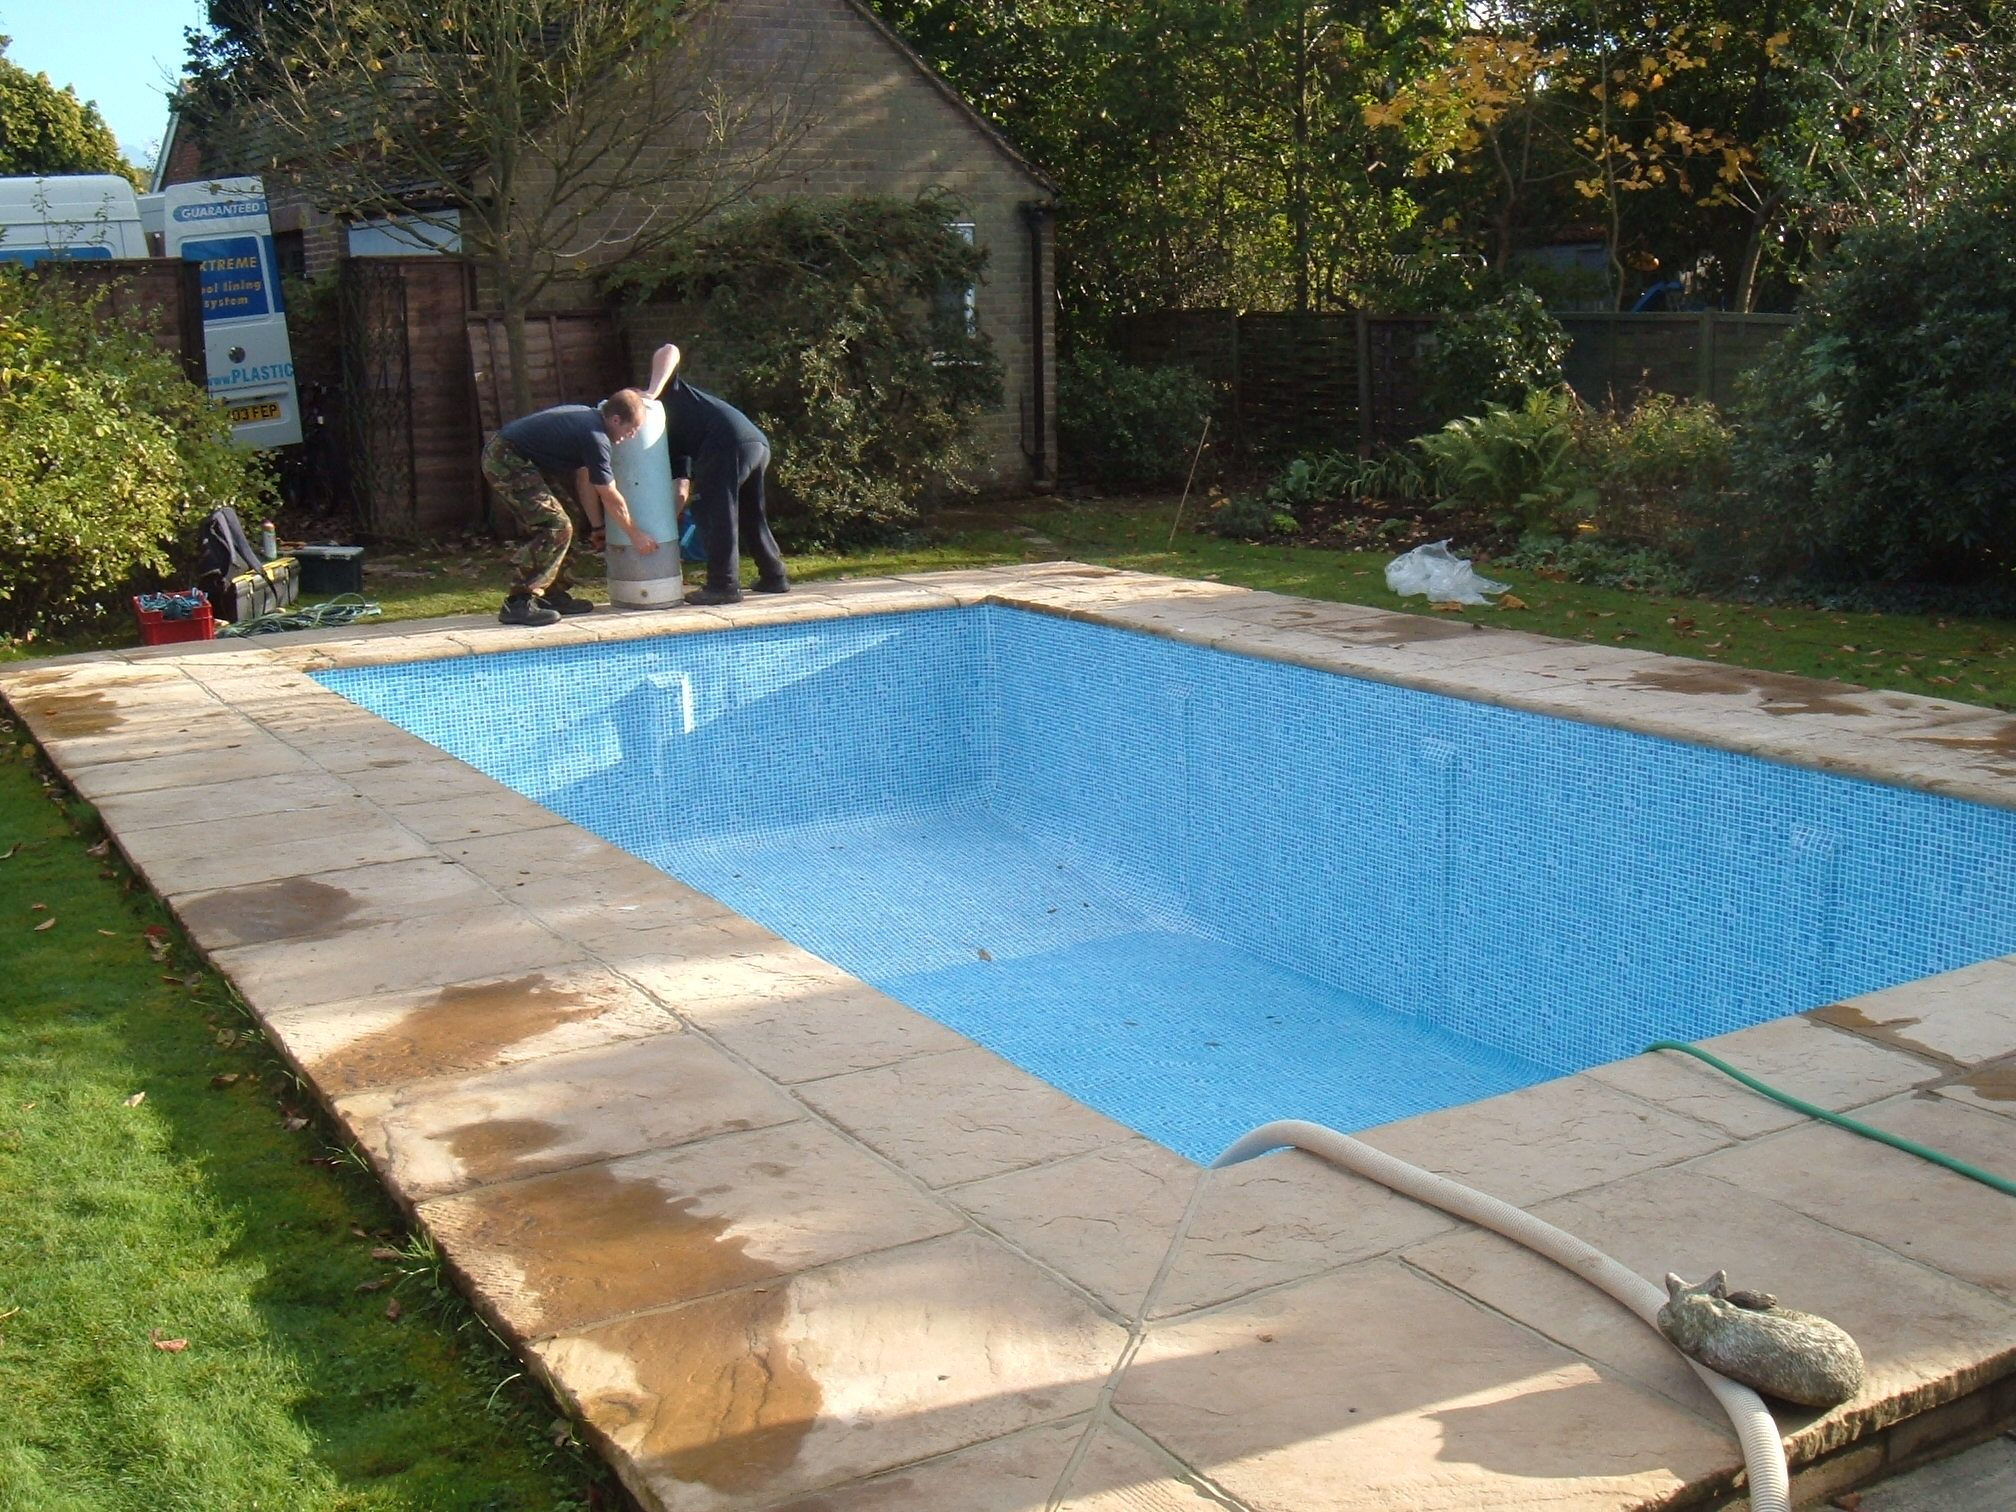 Onsite Swimming Pool Liner Installed Let The Filling Commence Home Ideas The Great Outdoors